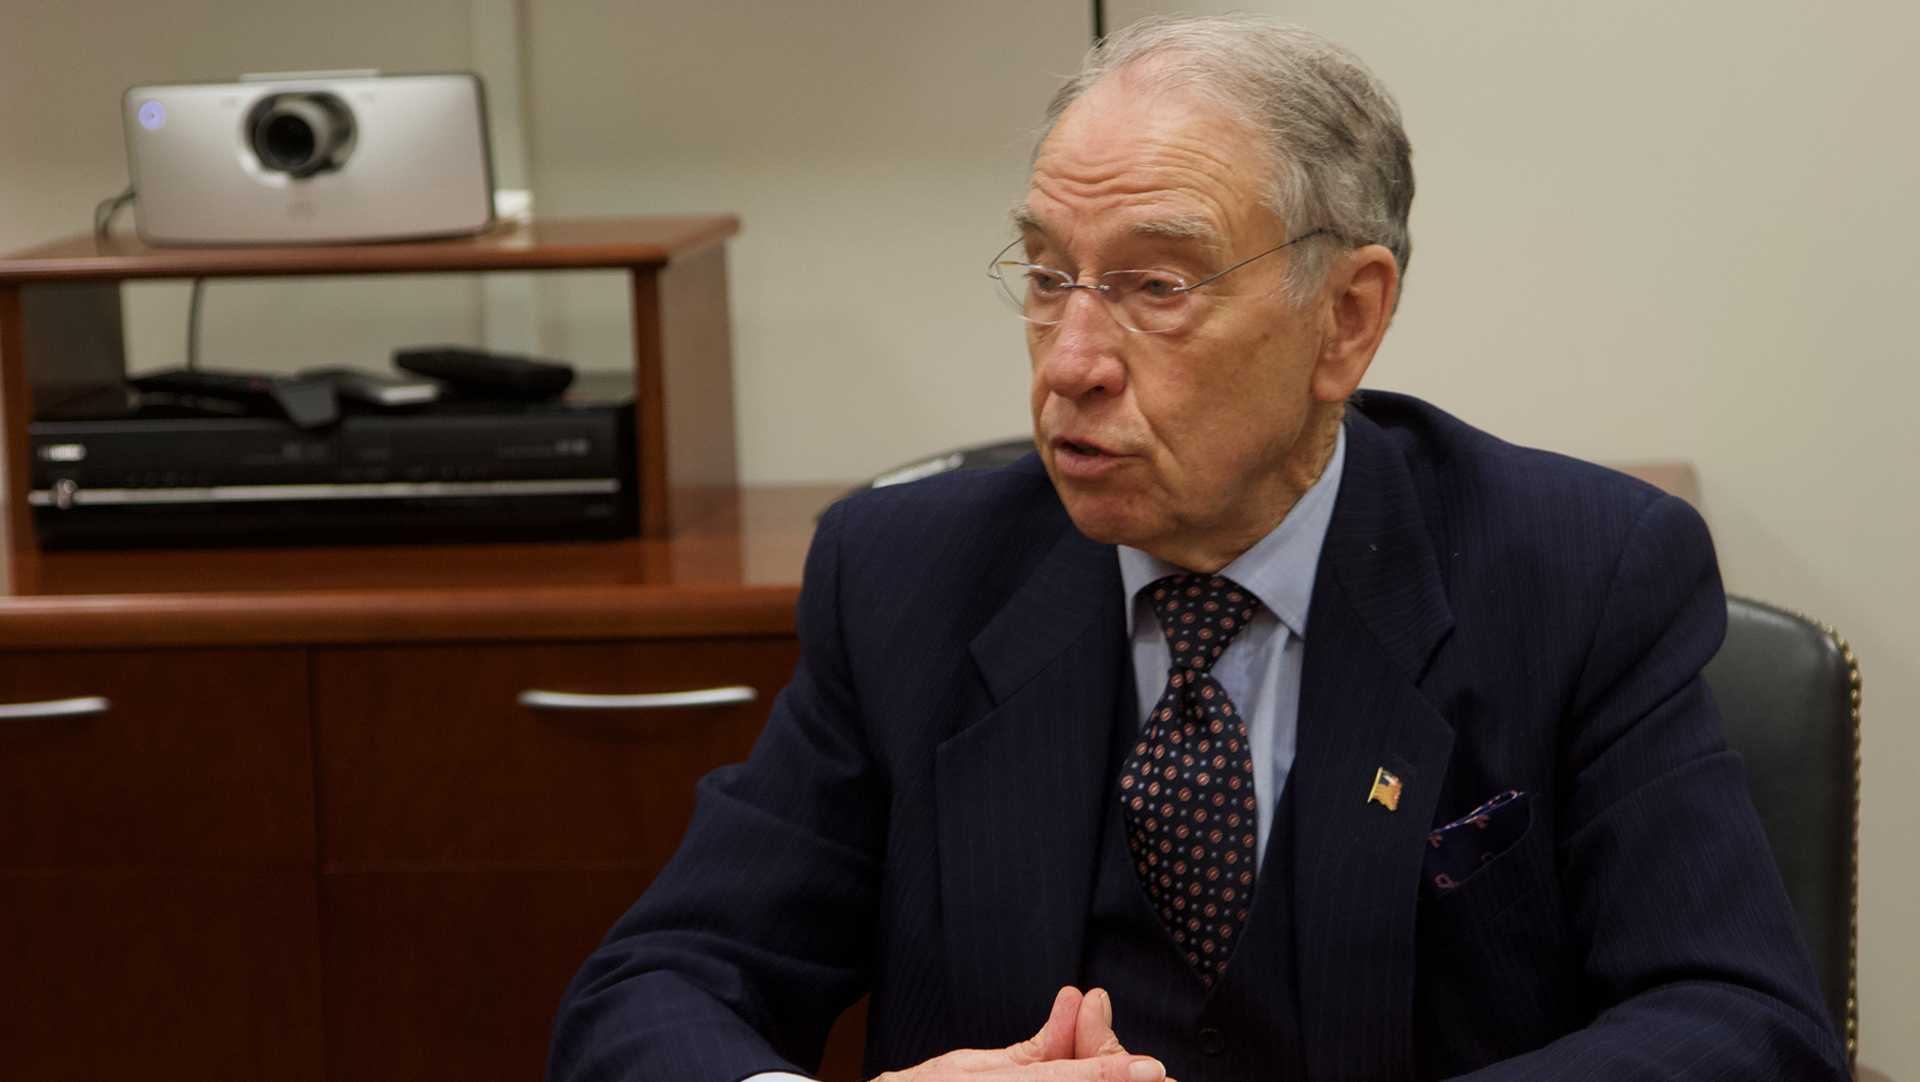 Sen. Chuck Grassley, R-Iowa, sits in his Washington office on March 12. Grassley said he opposes President Trump's tariffs on steel and aluminum because they could hurt Iowa farmers who rely on international trade to make a profit. (Gage Miskimen/The Daily Iowan)